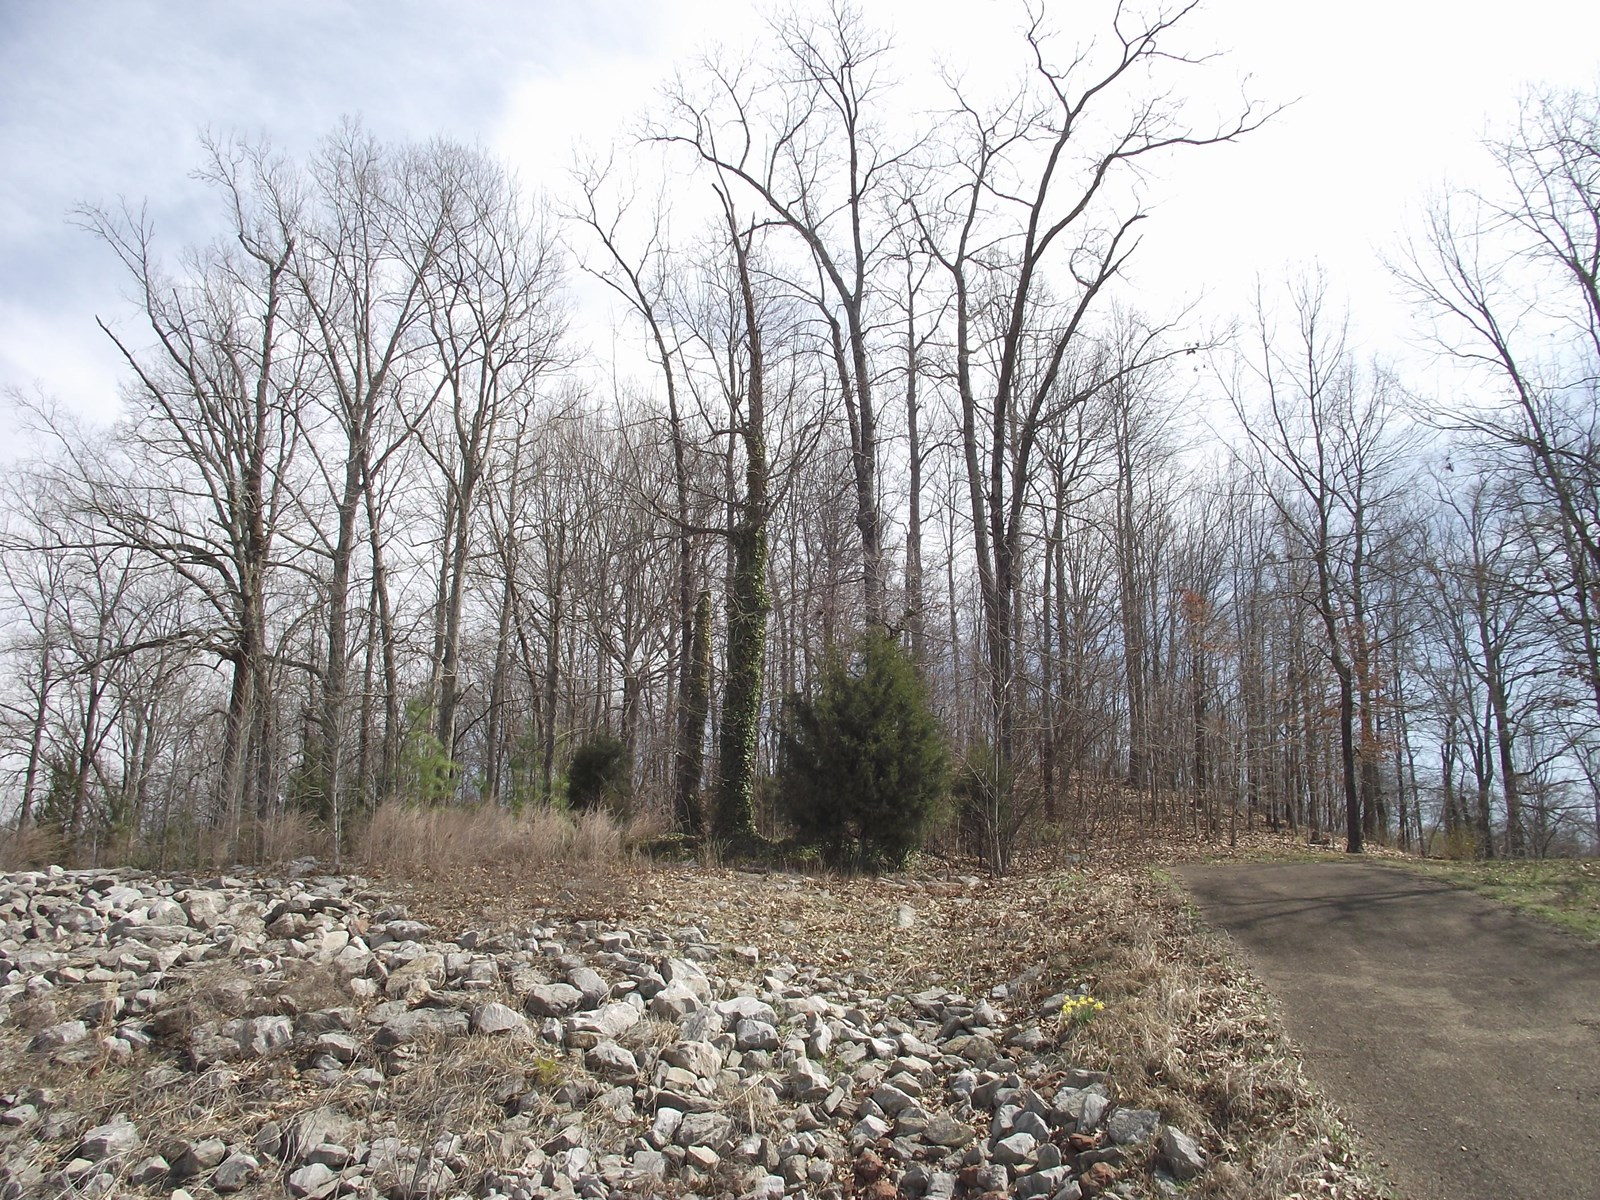 LAND FOR SALE IN TENNESSEE TO BUILD A HOME ON